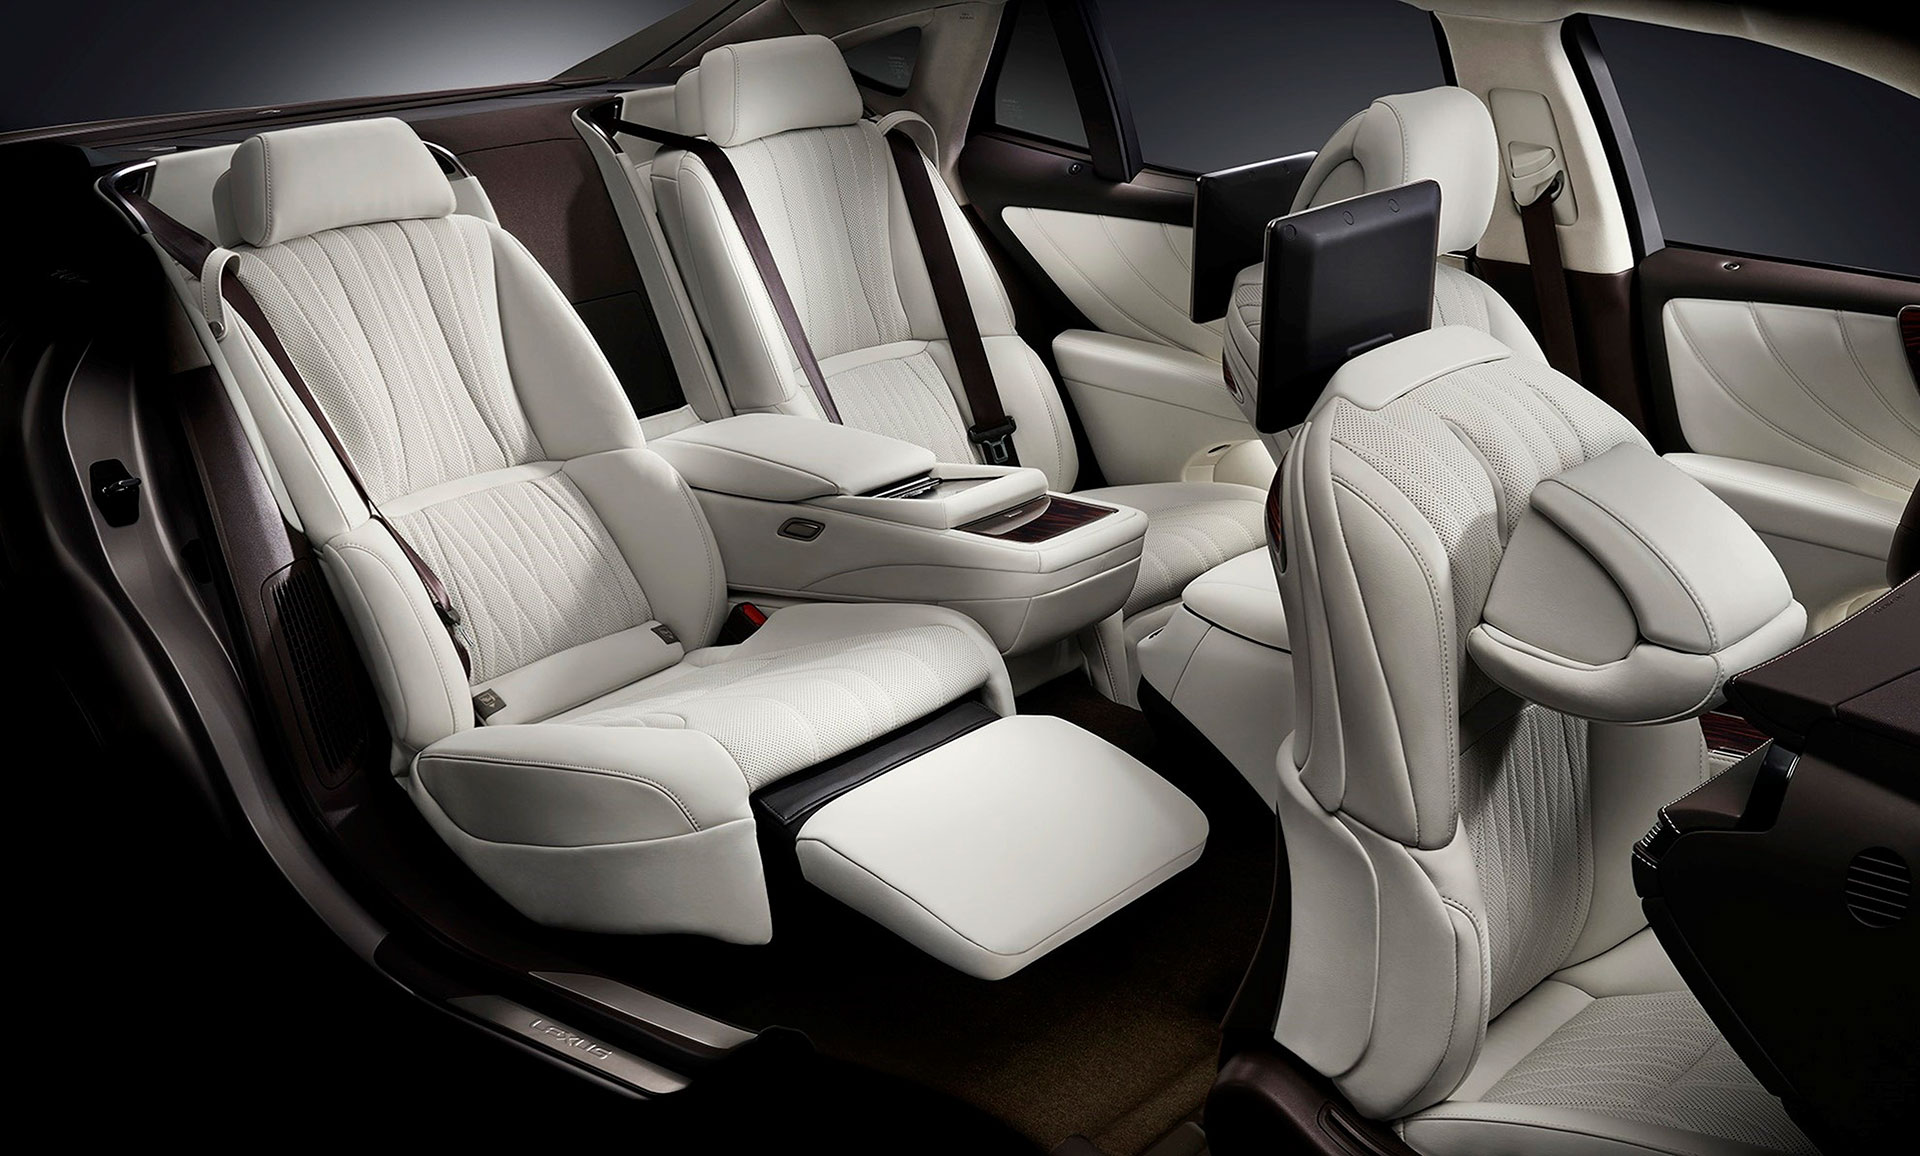 2018 lexus ls features rear seat adjustment ottoman massage